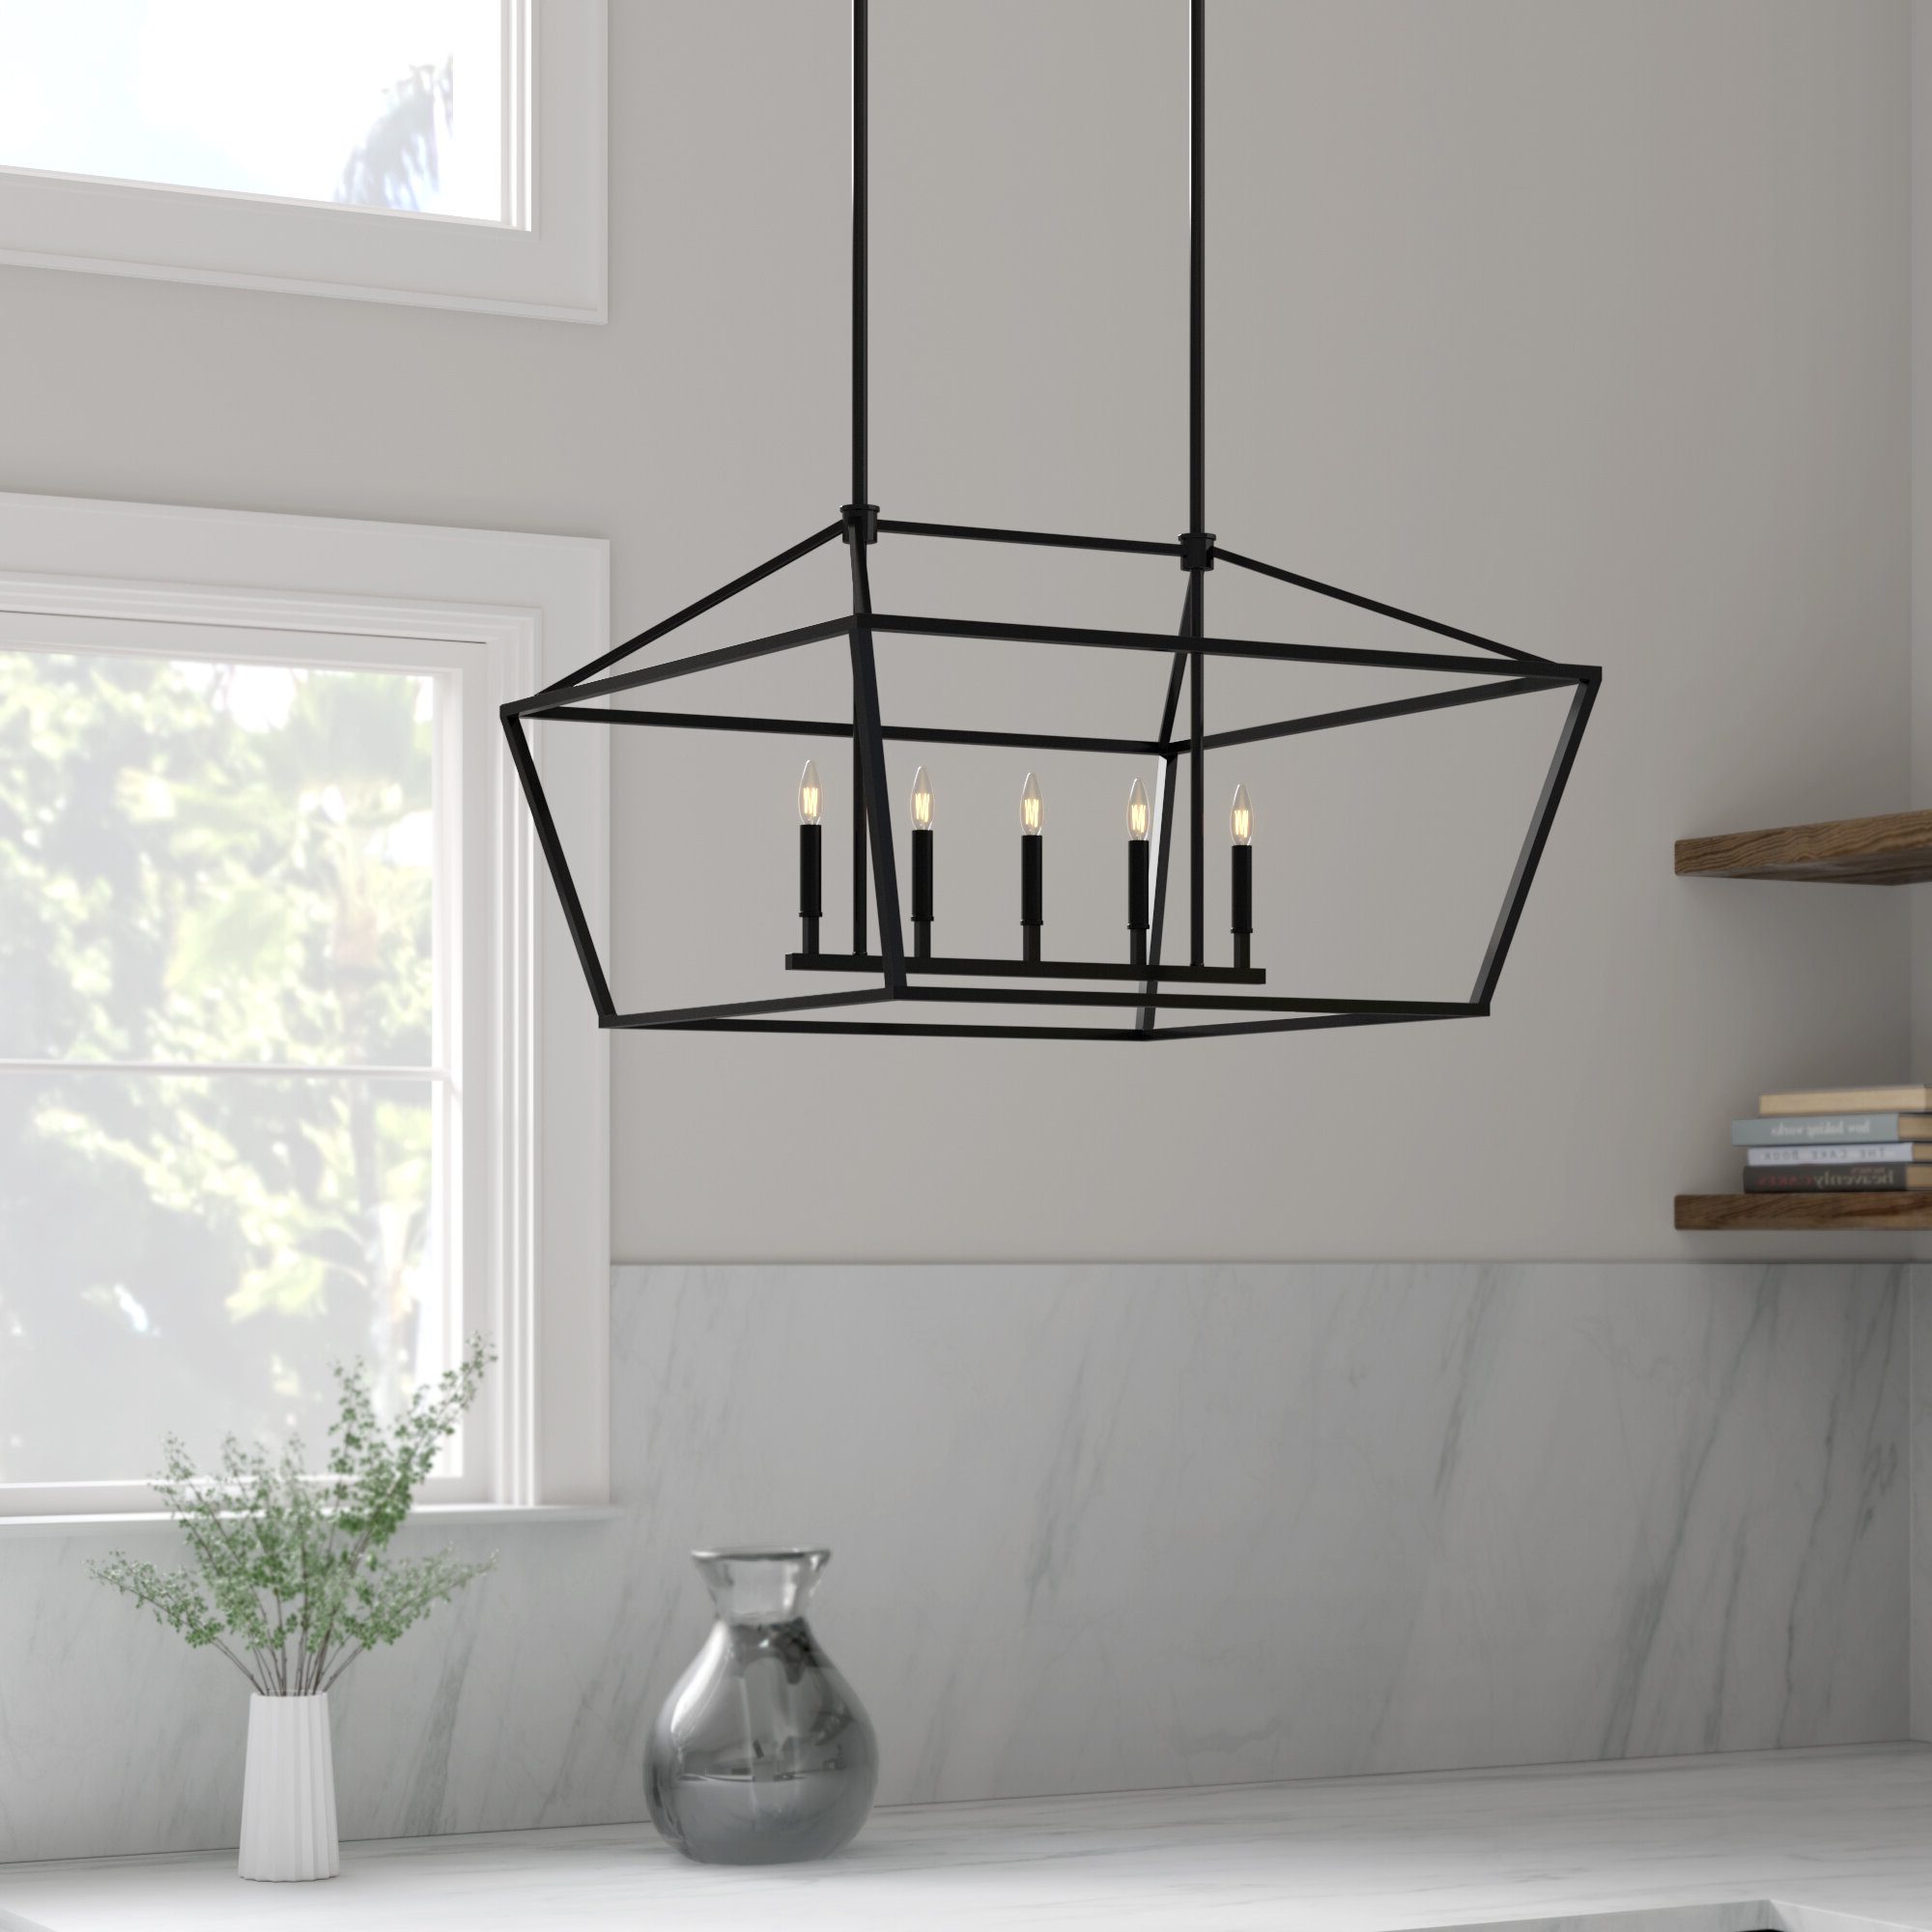 Poisson Indigo 5 Light Kitchen Island Linear Pendant With Regard To Current Odie 8 Light Kitchen Island Square / Rectangle Pendants (View 10 of 25)